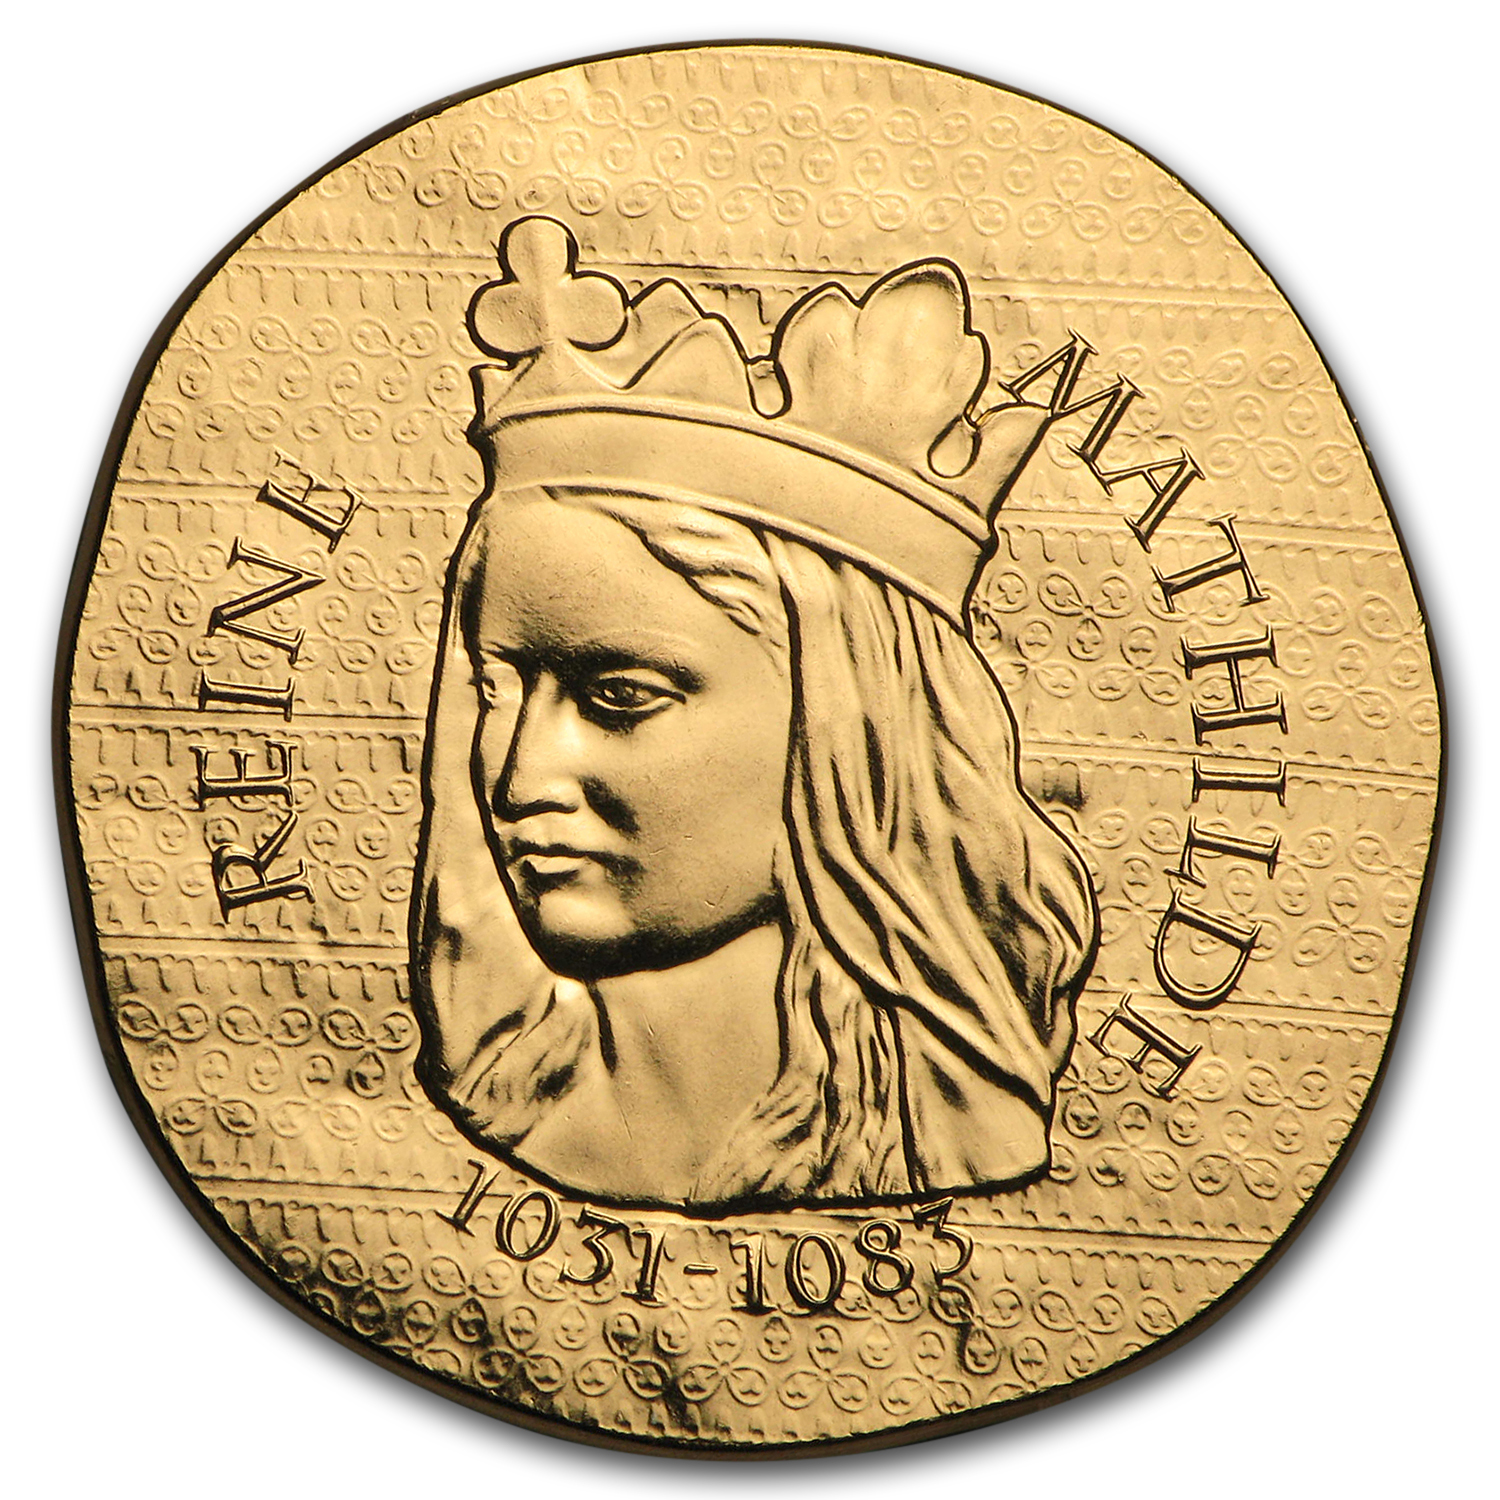 2016 1/4 oz Proof Gold €50 Women of France (Queen Matilda)